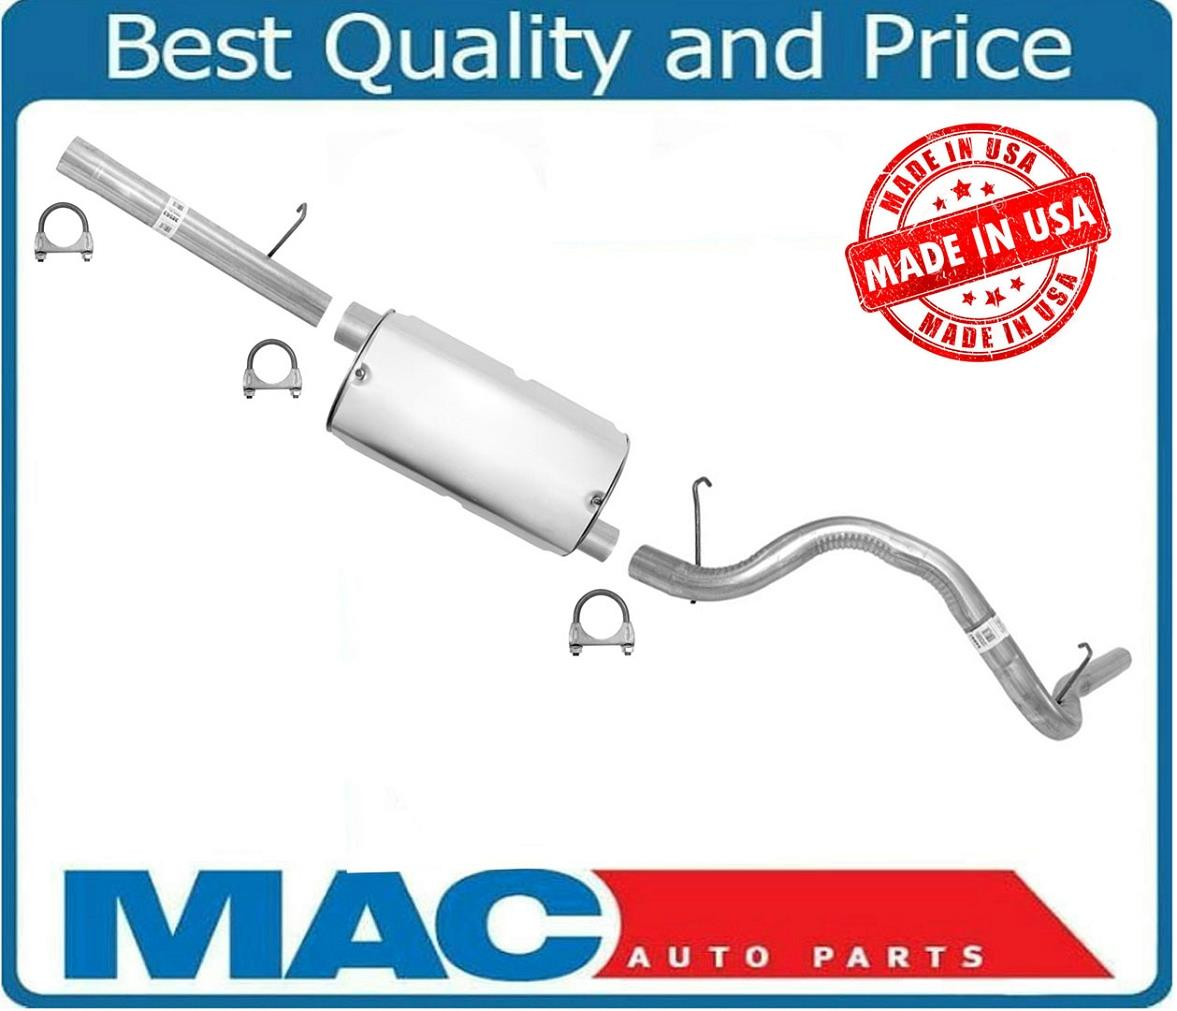 Walker Exhaust 54000 Exhaust Tail Pipe for 1994-1995 Chevrolet Astro GMC Safari